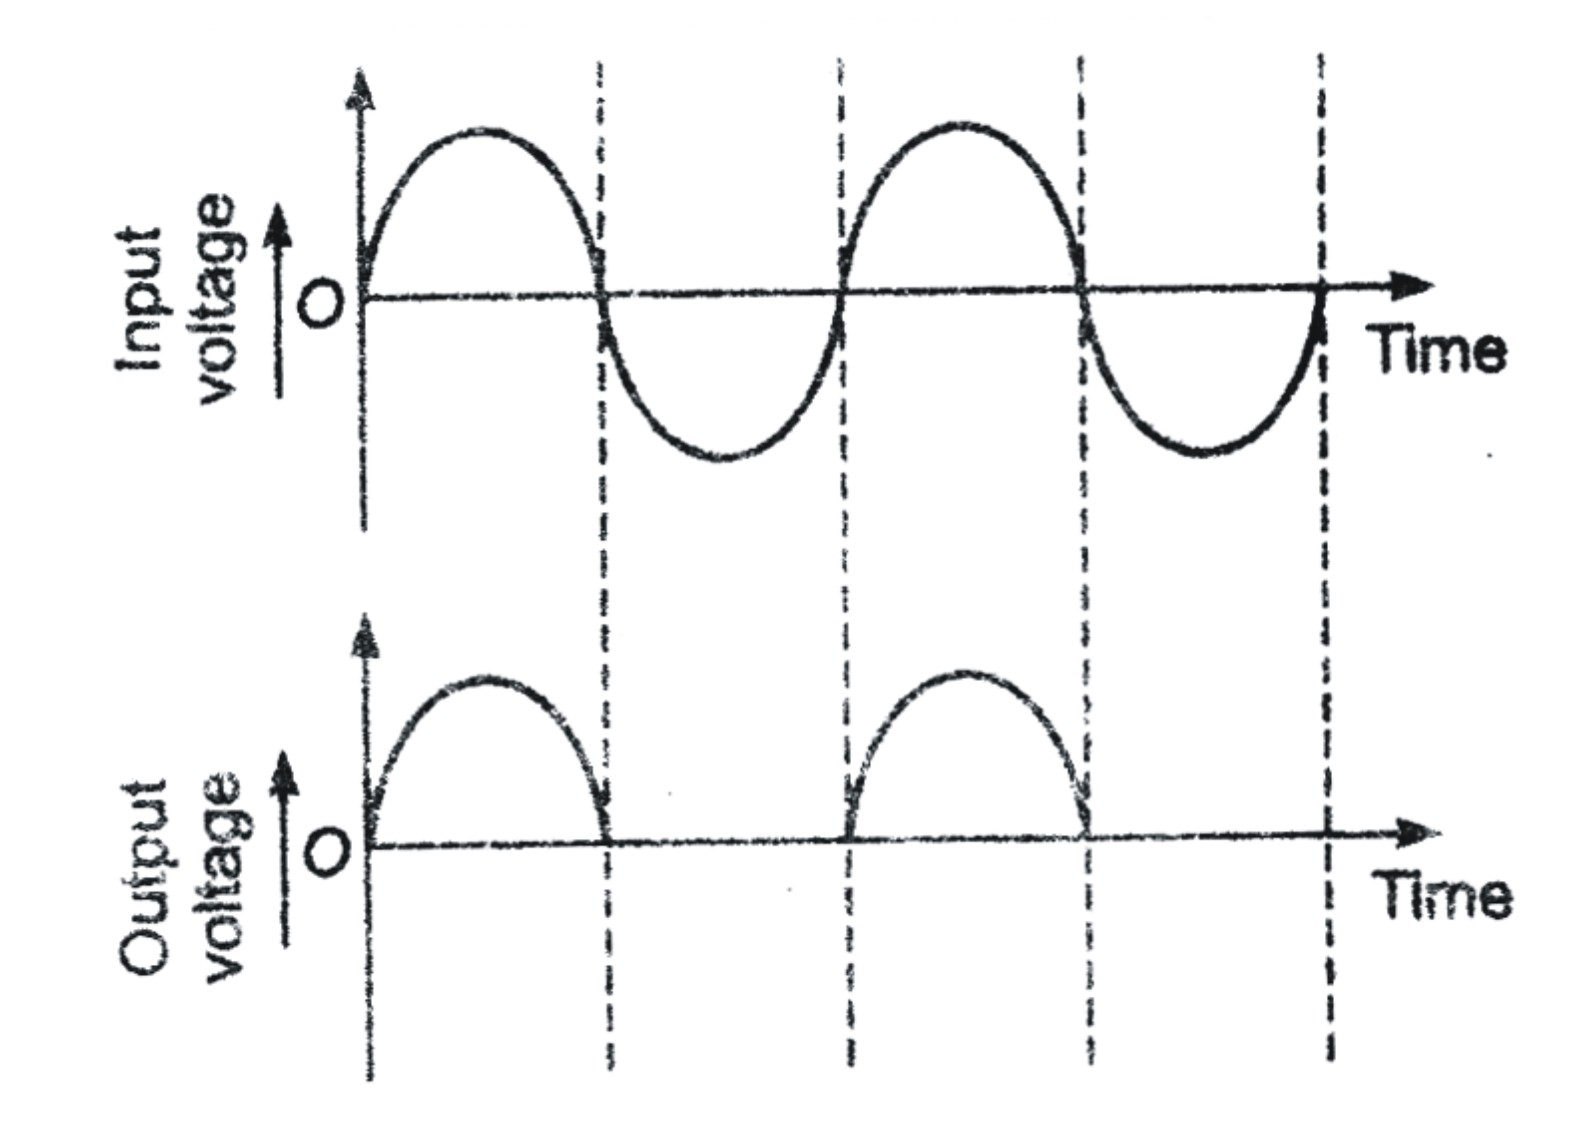 Draw The Circuit Diagram Of Full Wave Rectifier And State